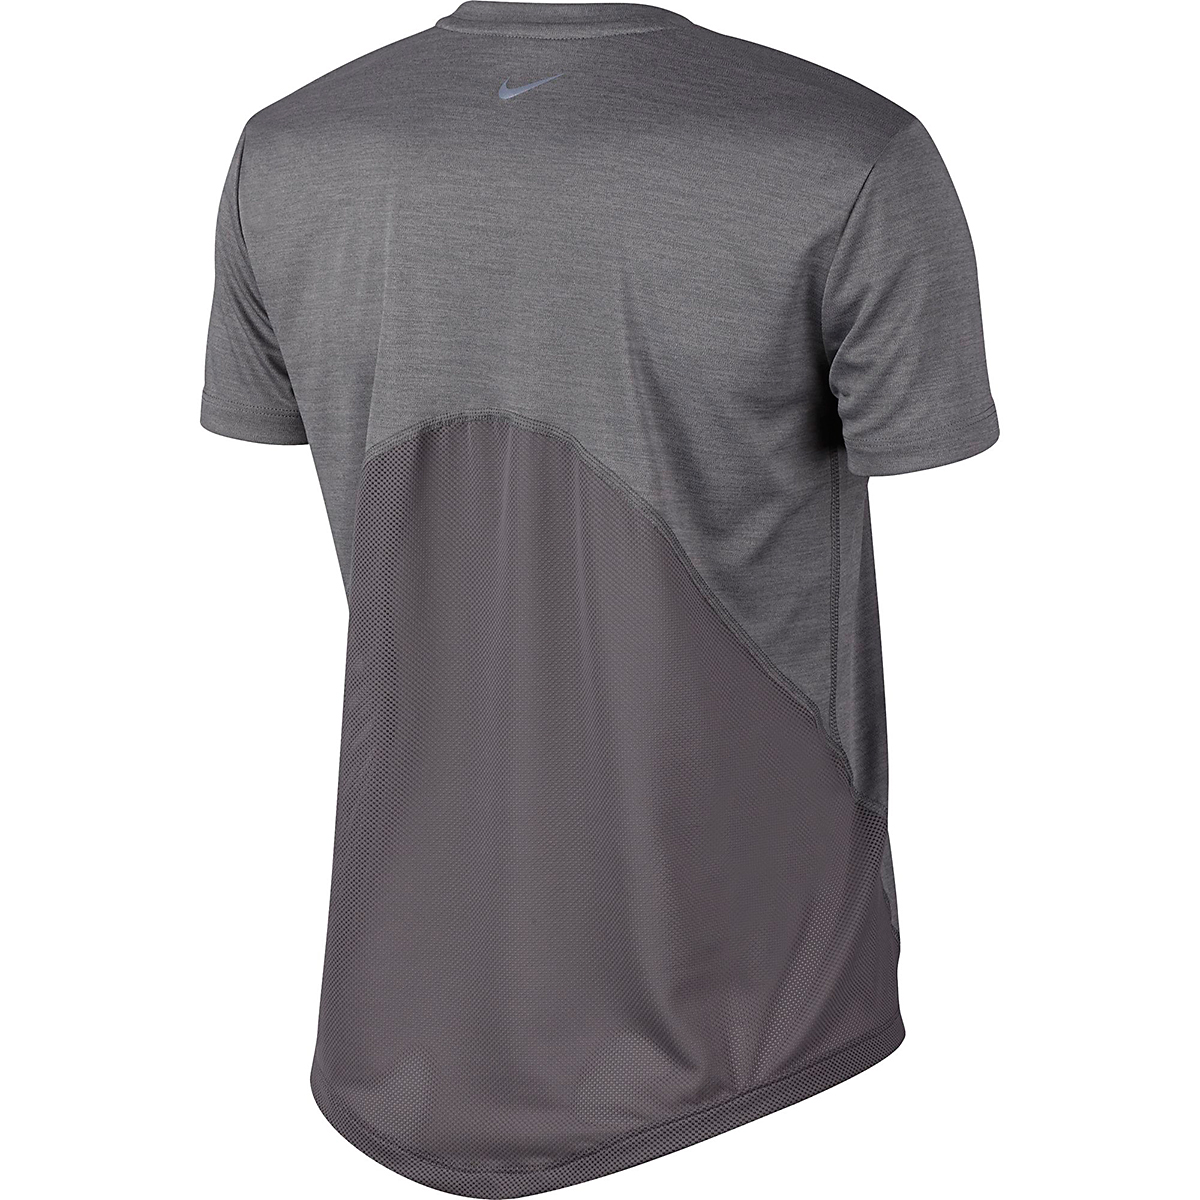 Women's Nike Miler Short Sleeve - Color: Gunsmoke/Heather/Heather - Size: XS, Gunsmoke/Heather/Heather, large, image 2